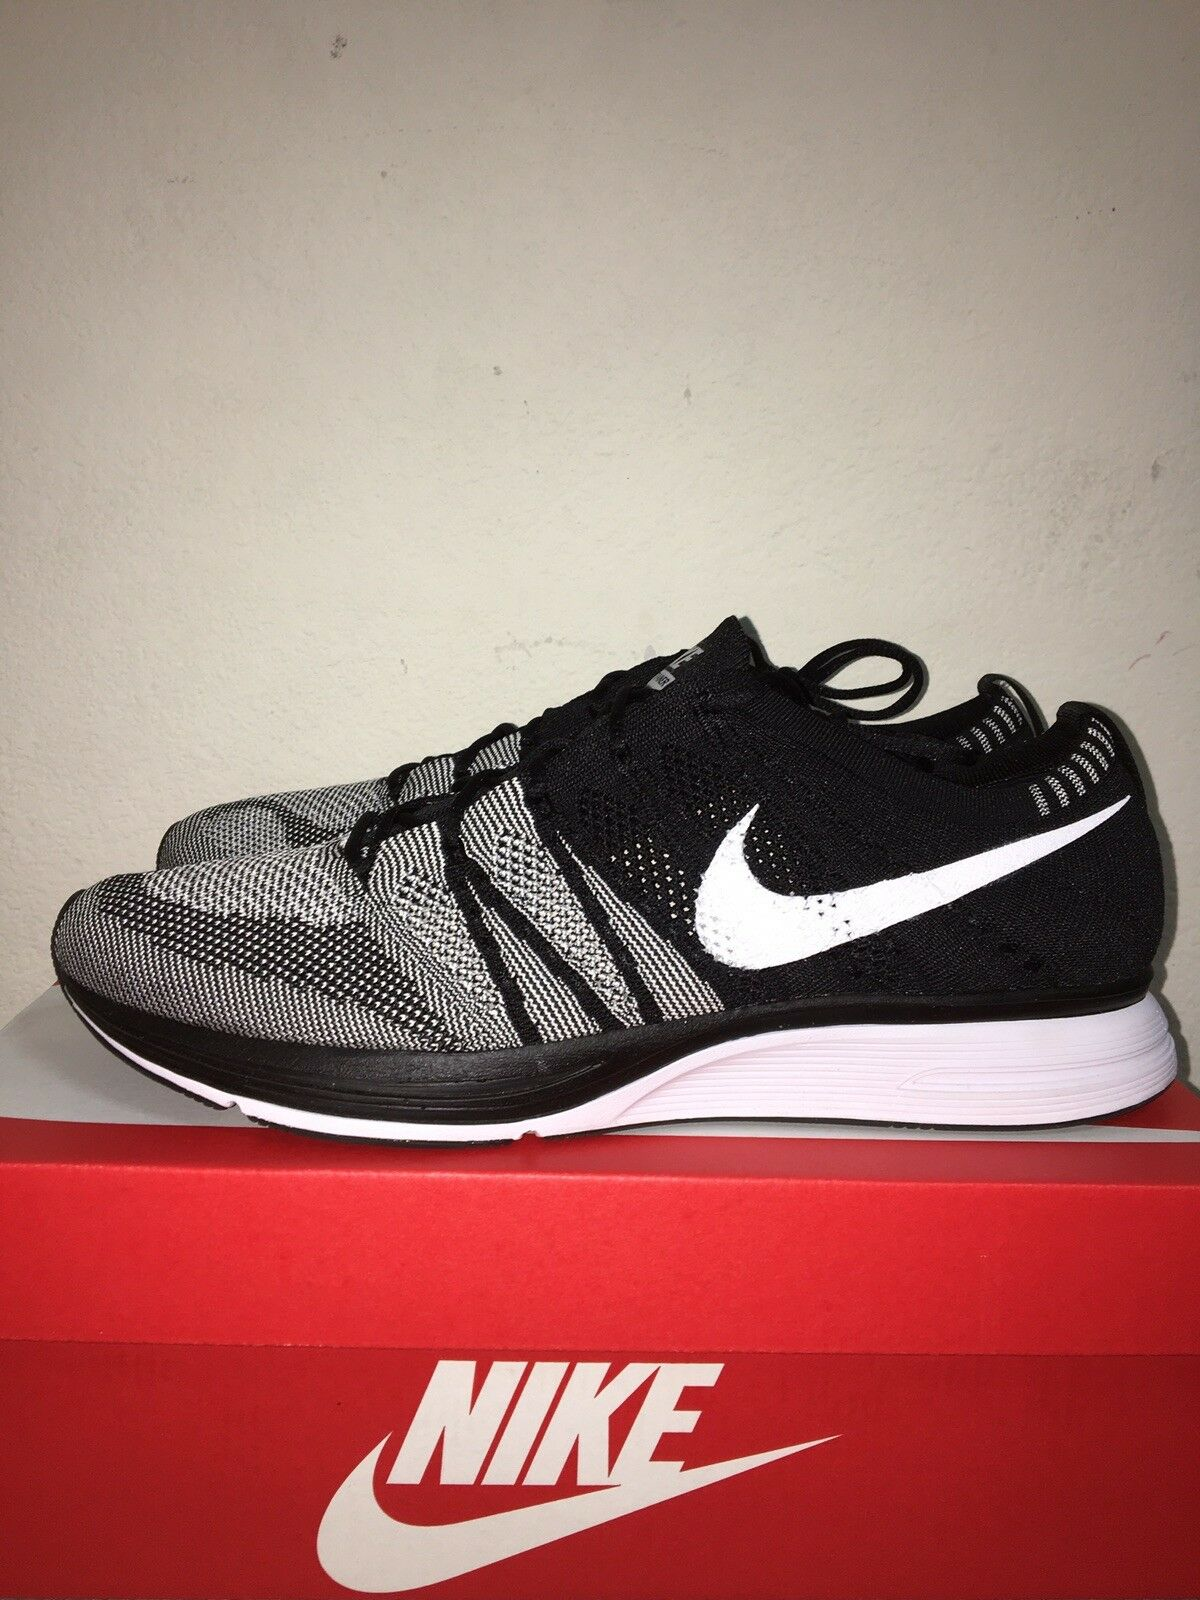 2018 Men's Nike Flyknit Trainer Oreo AH8396-005 Black White Size 12 shoes Used